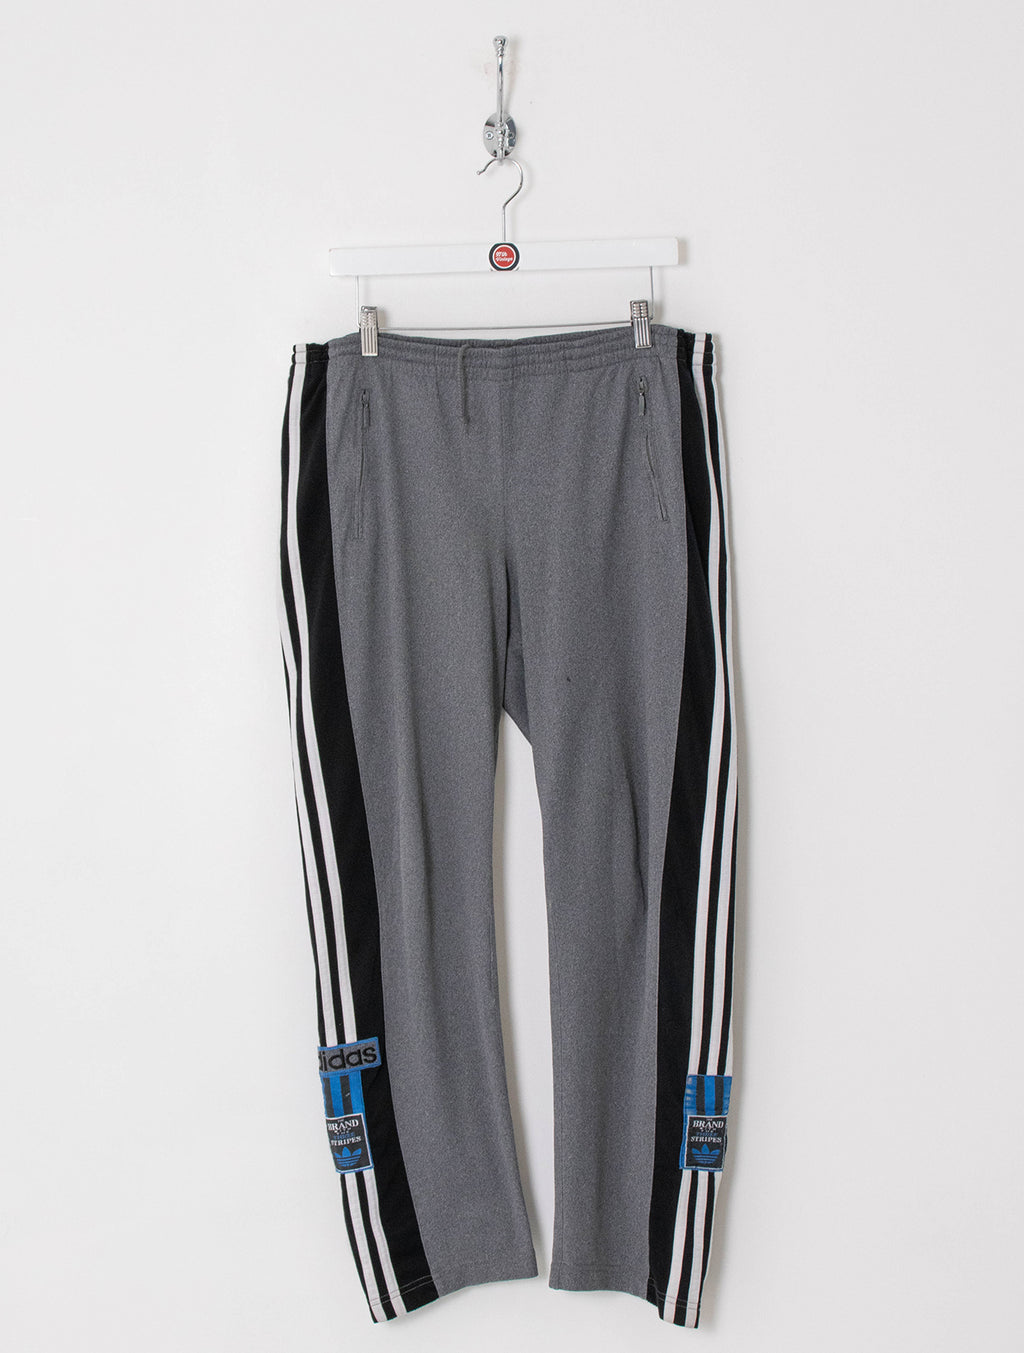 Adidas Popper Track Bottoms (L)